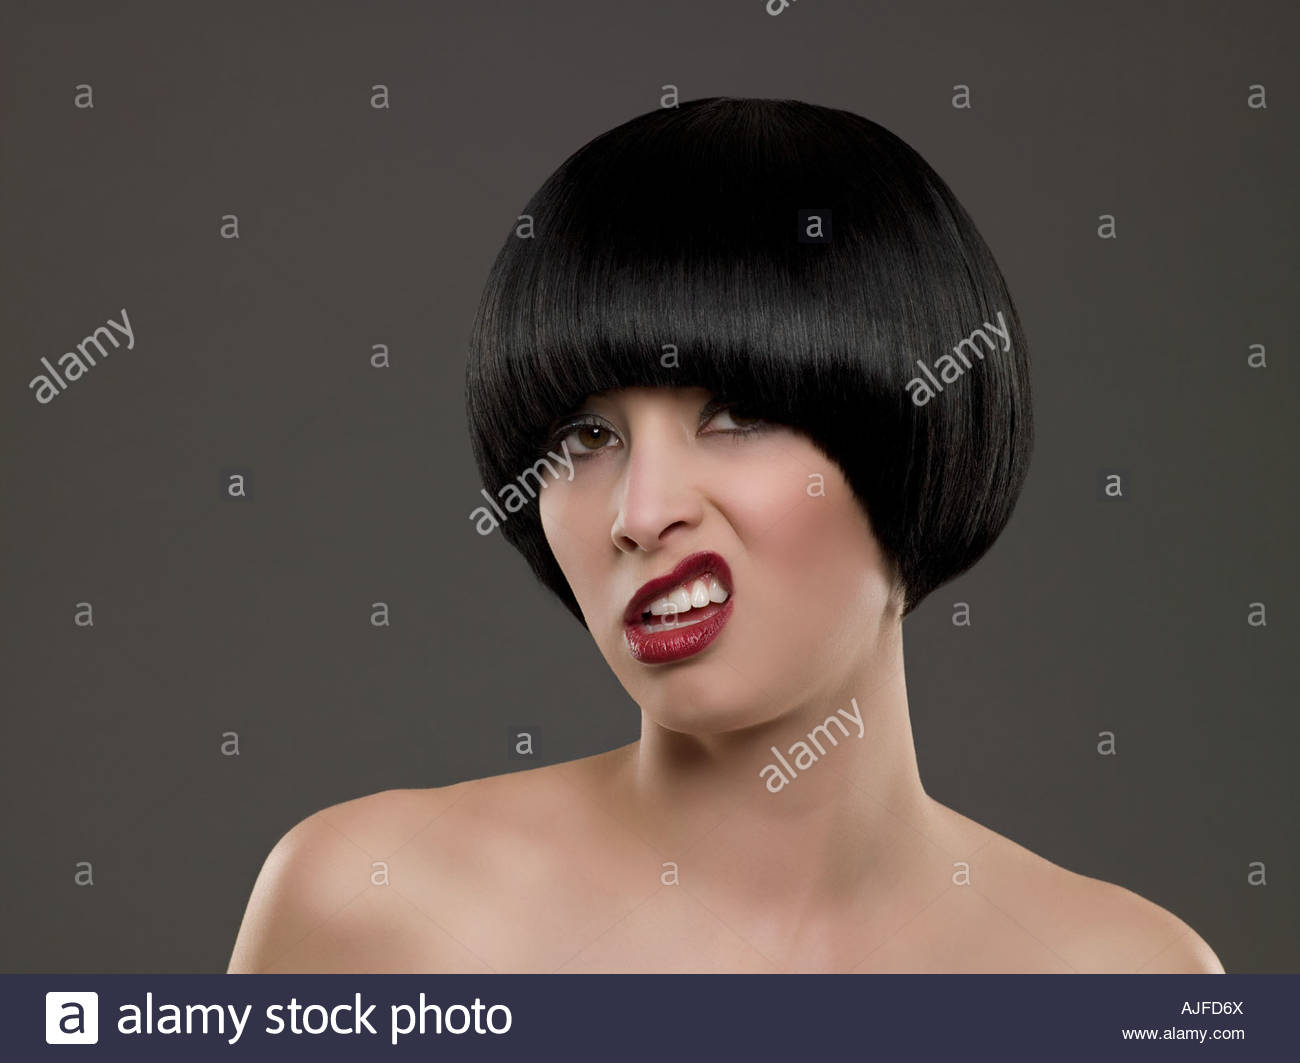 Young woman grimacing - Stock Image